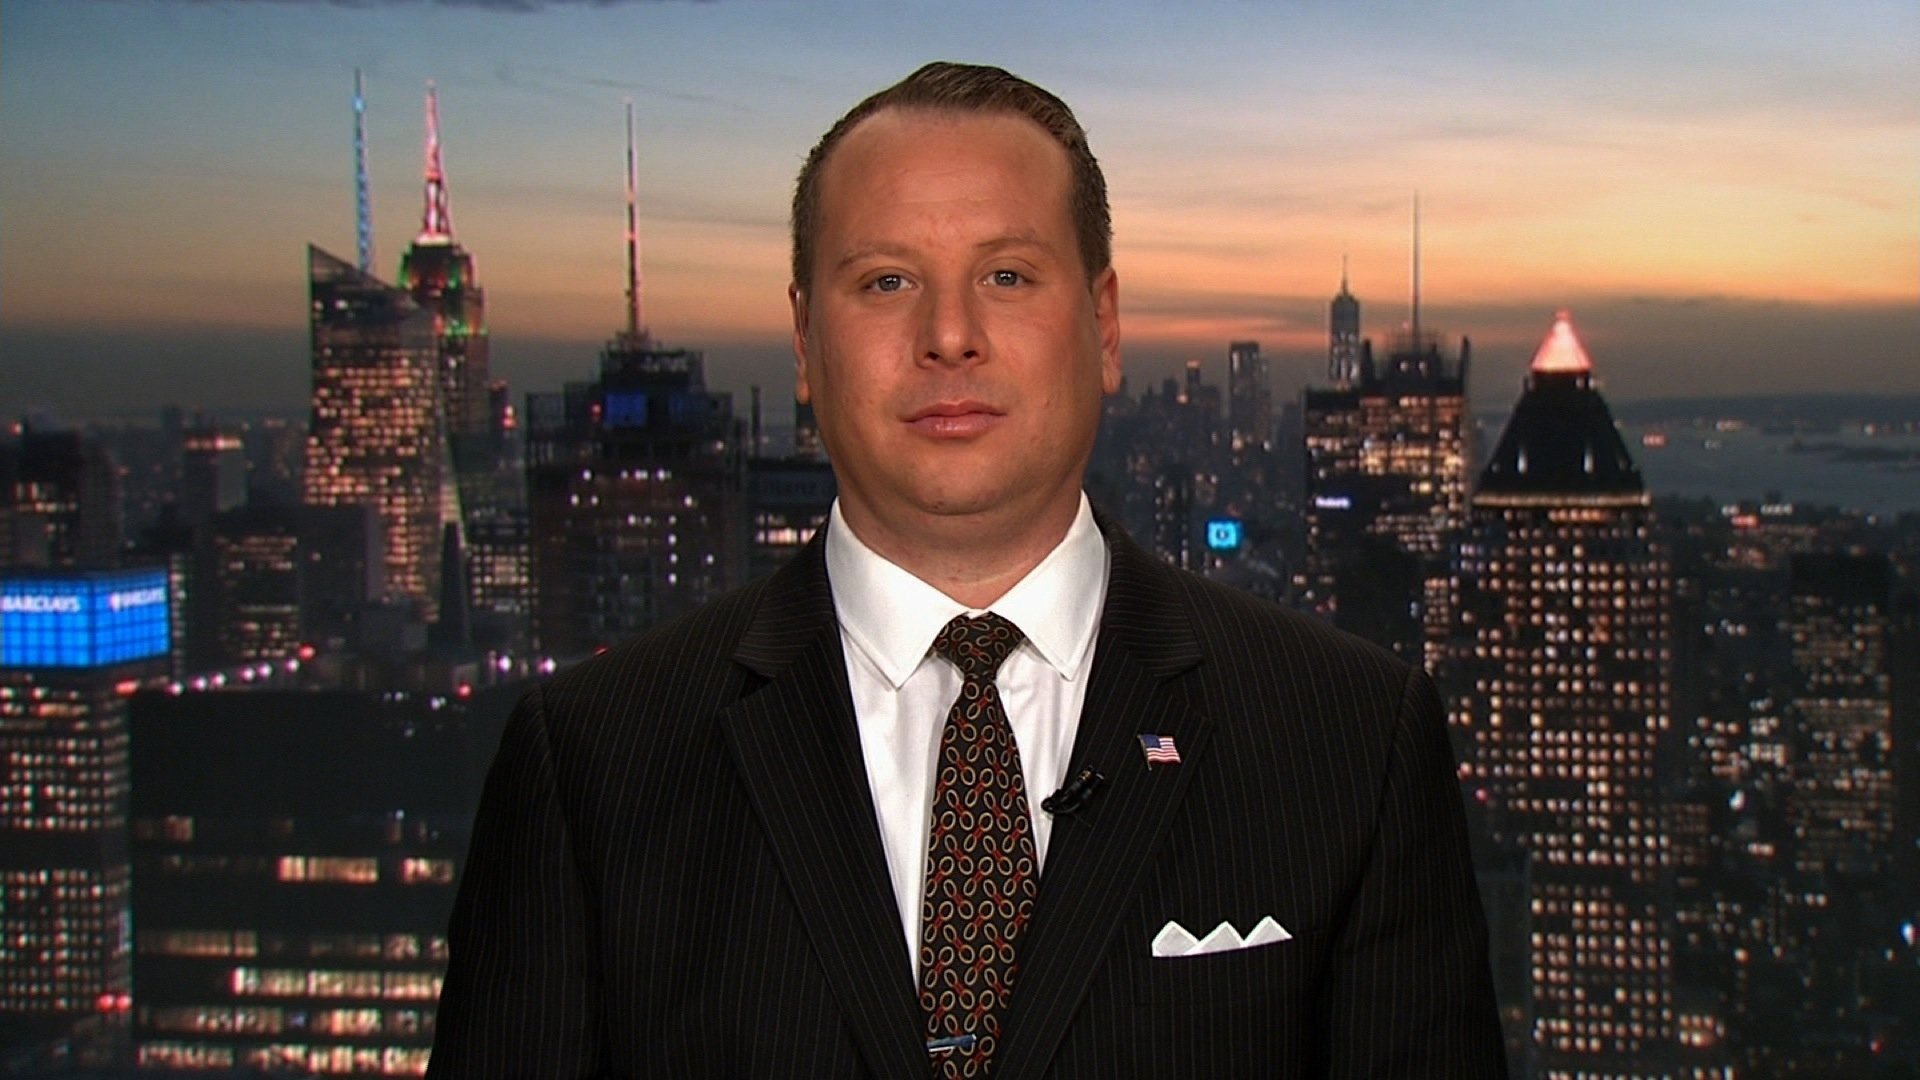 Former Trump aide Sam Nunberg had an epic on-air meltdown